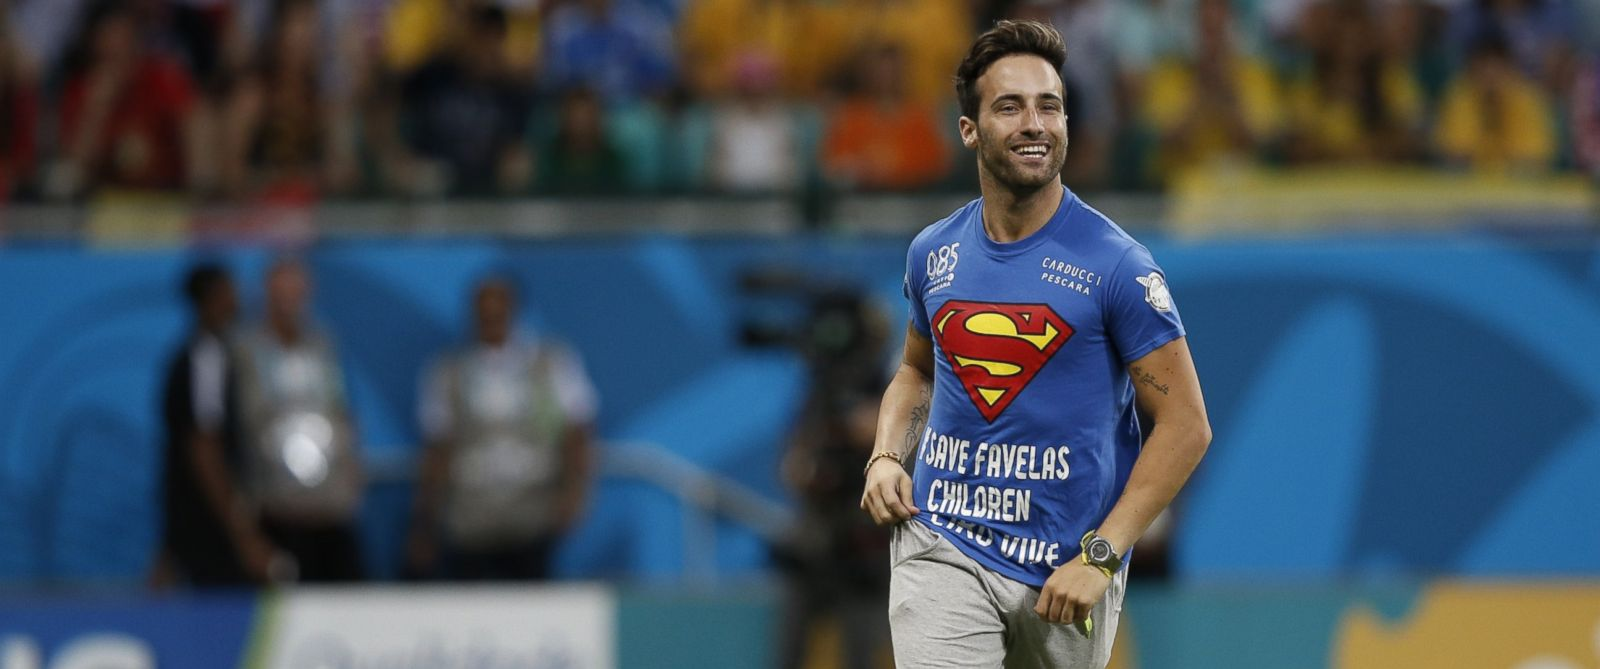 PHOTO: A pitch invader runs on the playing surface during the Round of 16 football match between Belgium and USA at The Fonte Nova Arena in Salvador, July 1, 2014, during the 2014 FIFA World Cup.